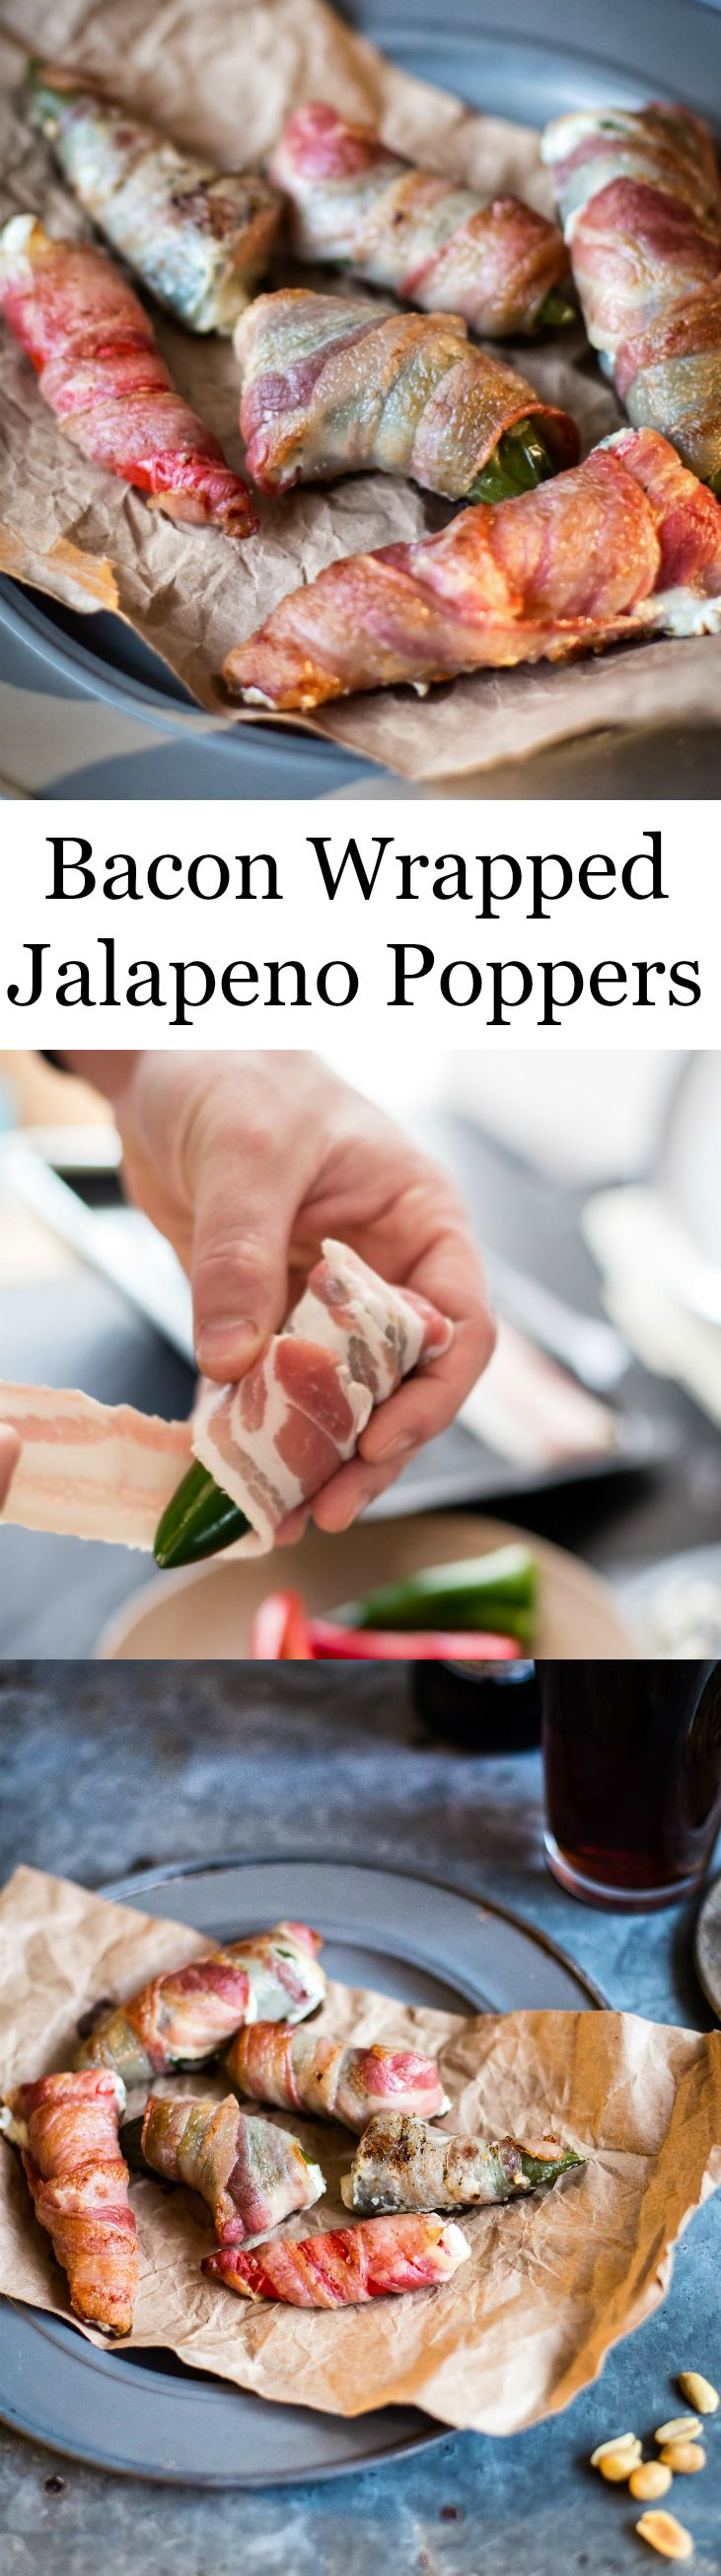 These Jalapeno Poppers are a delicious update on the old favourite!